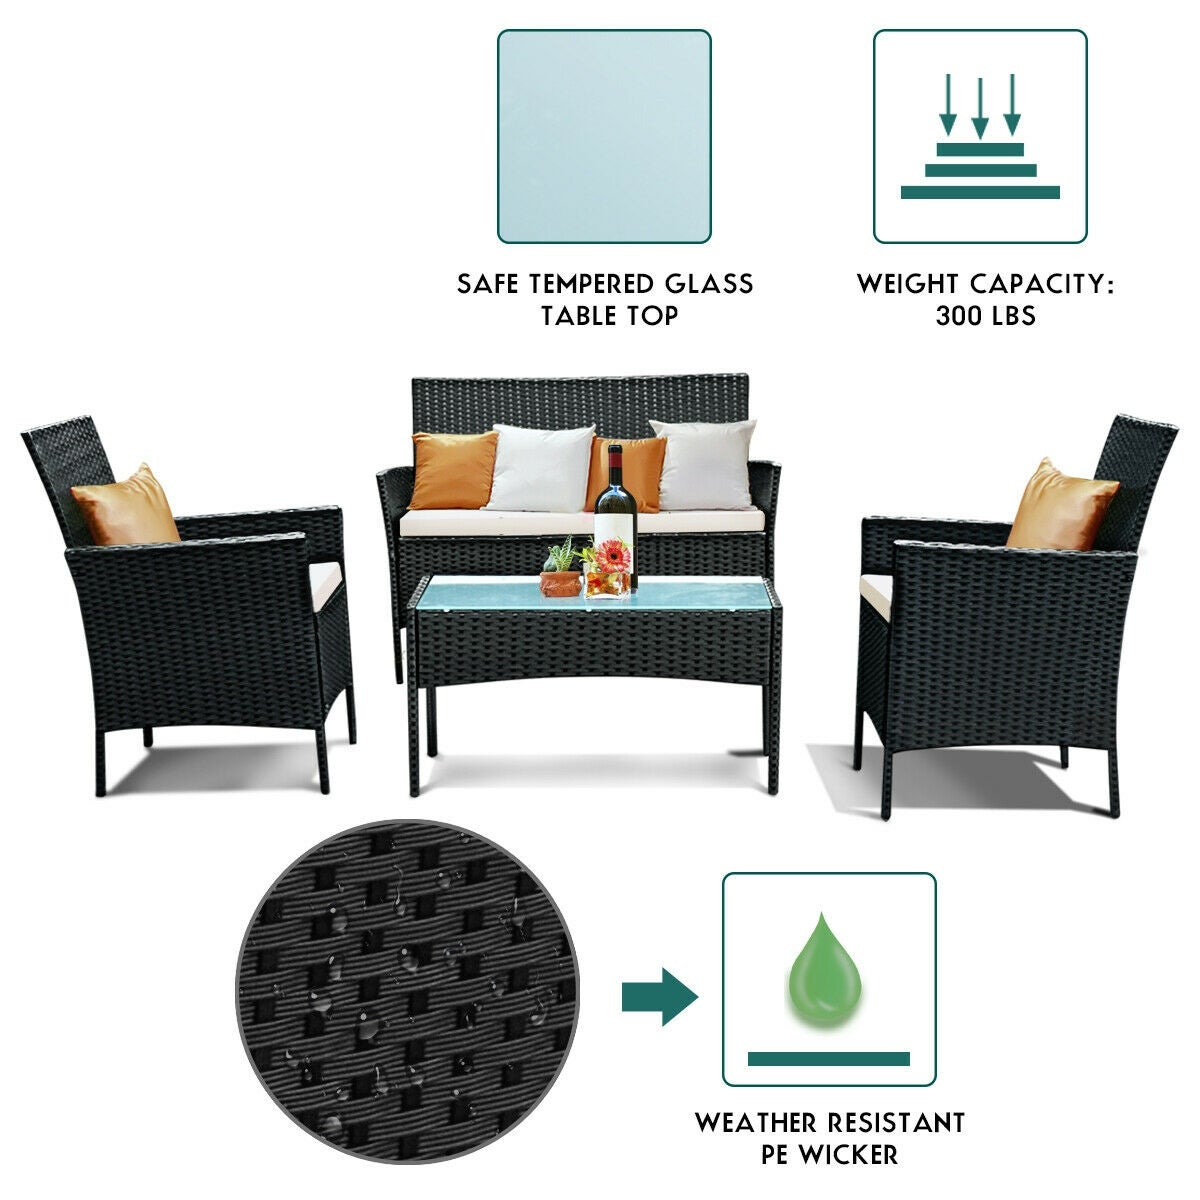 Patio Furniture For Over 300 Lbs.Costway 4 Pc Outdoor Rattan Furniture Set Loveseat Sofa Cushioned Patio Garden Steel